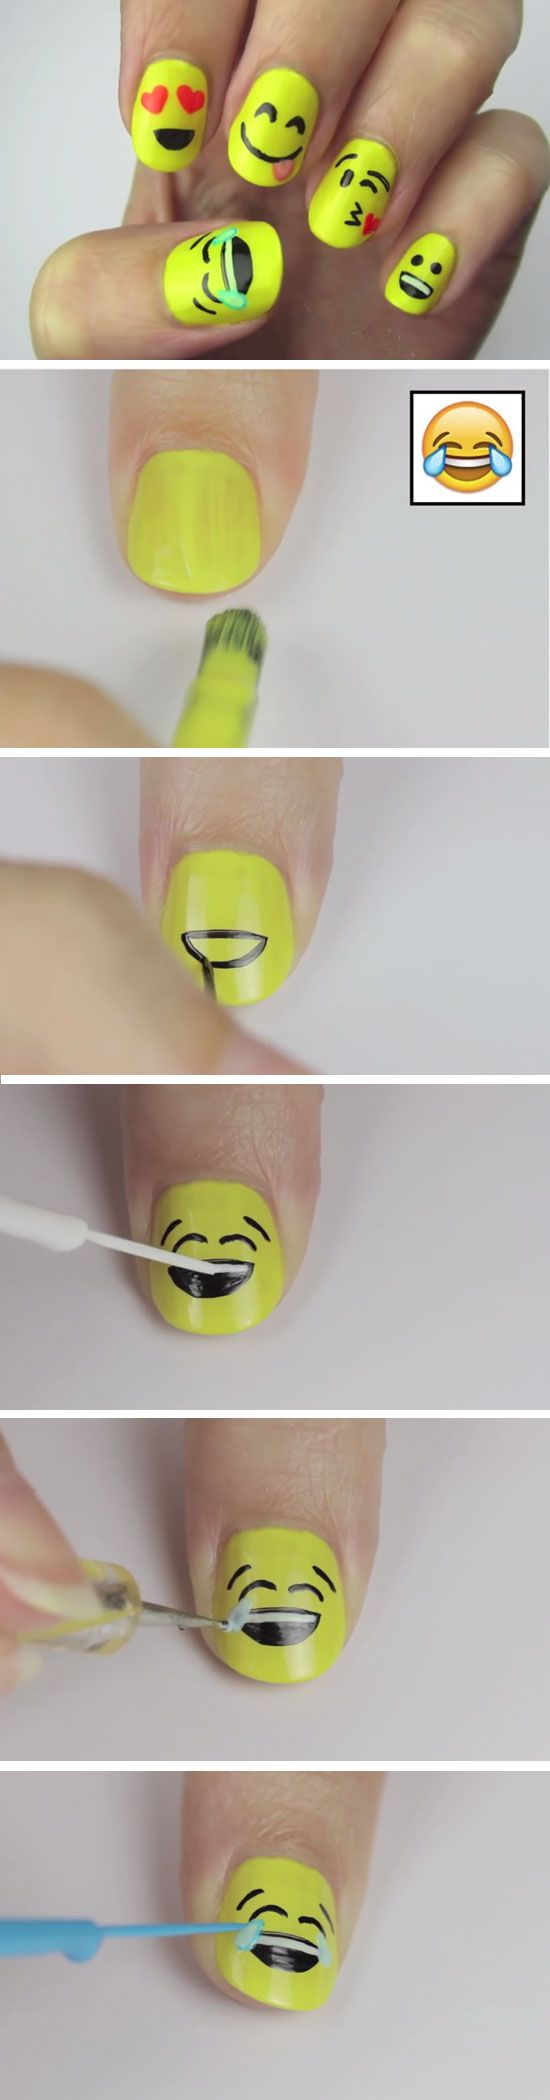 Emoji Nail Art | Click Pic for 22 DIY Back to School Nails for Kids | Awesome Nail Art Ideas for Fall https://noahxnw.tumblr.com/post/160883013461/pretty-pastel-hair-color-ideas